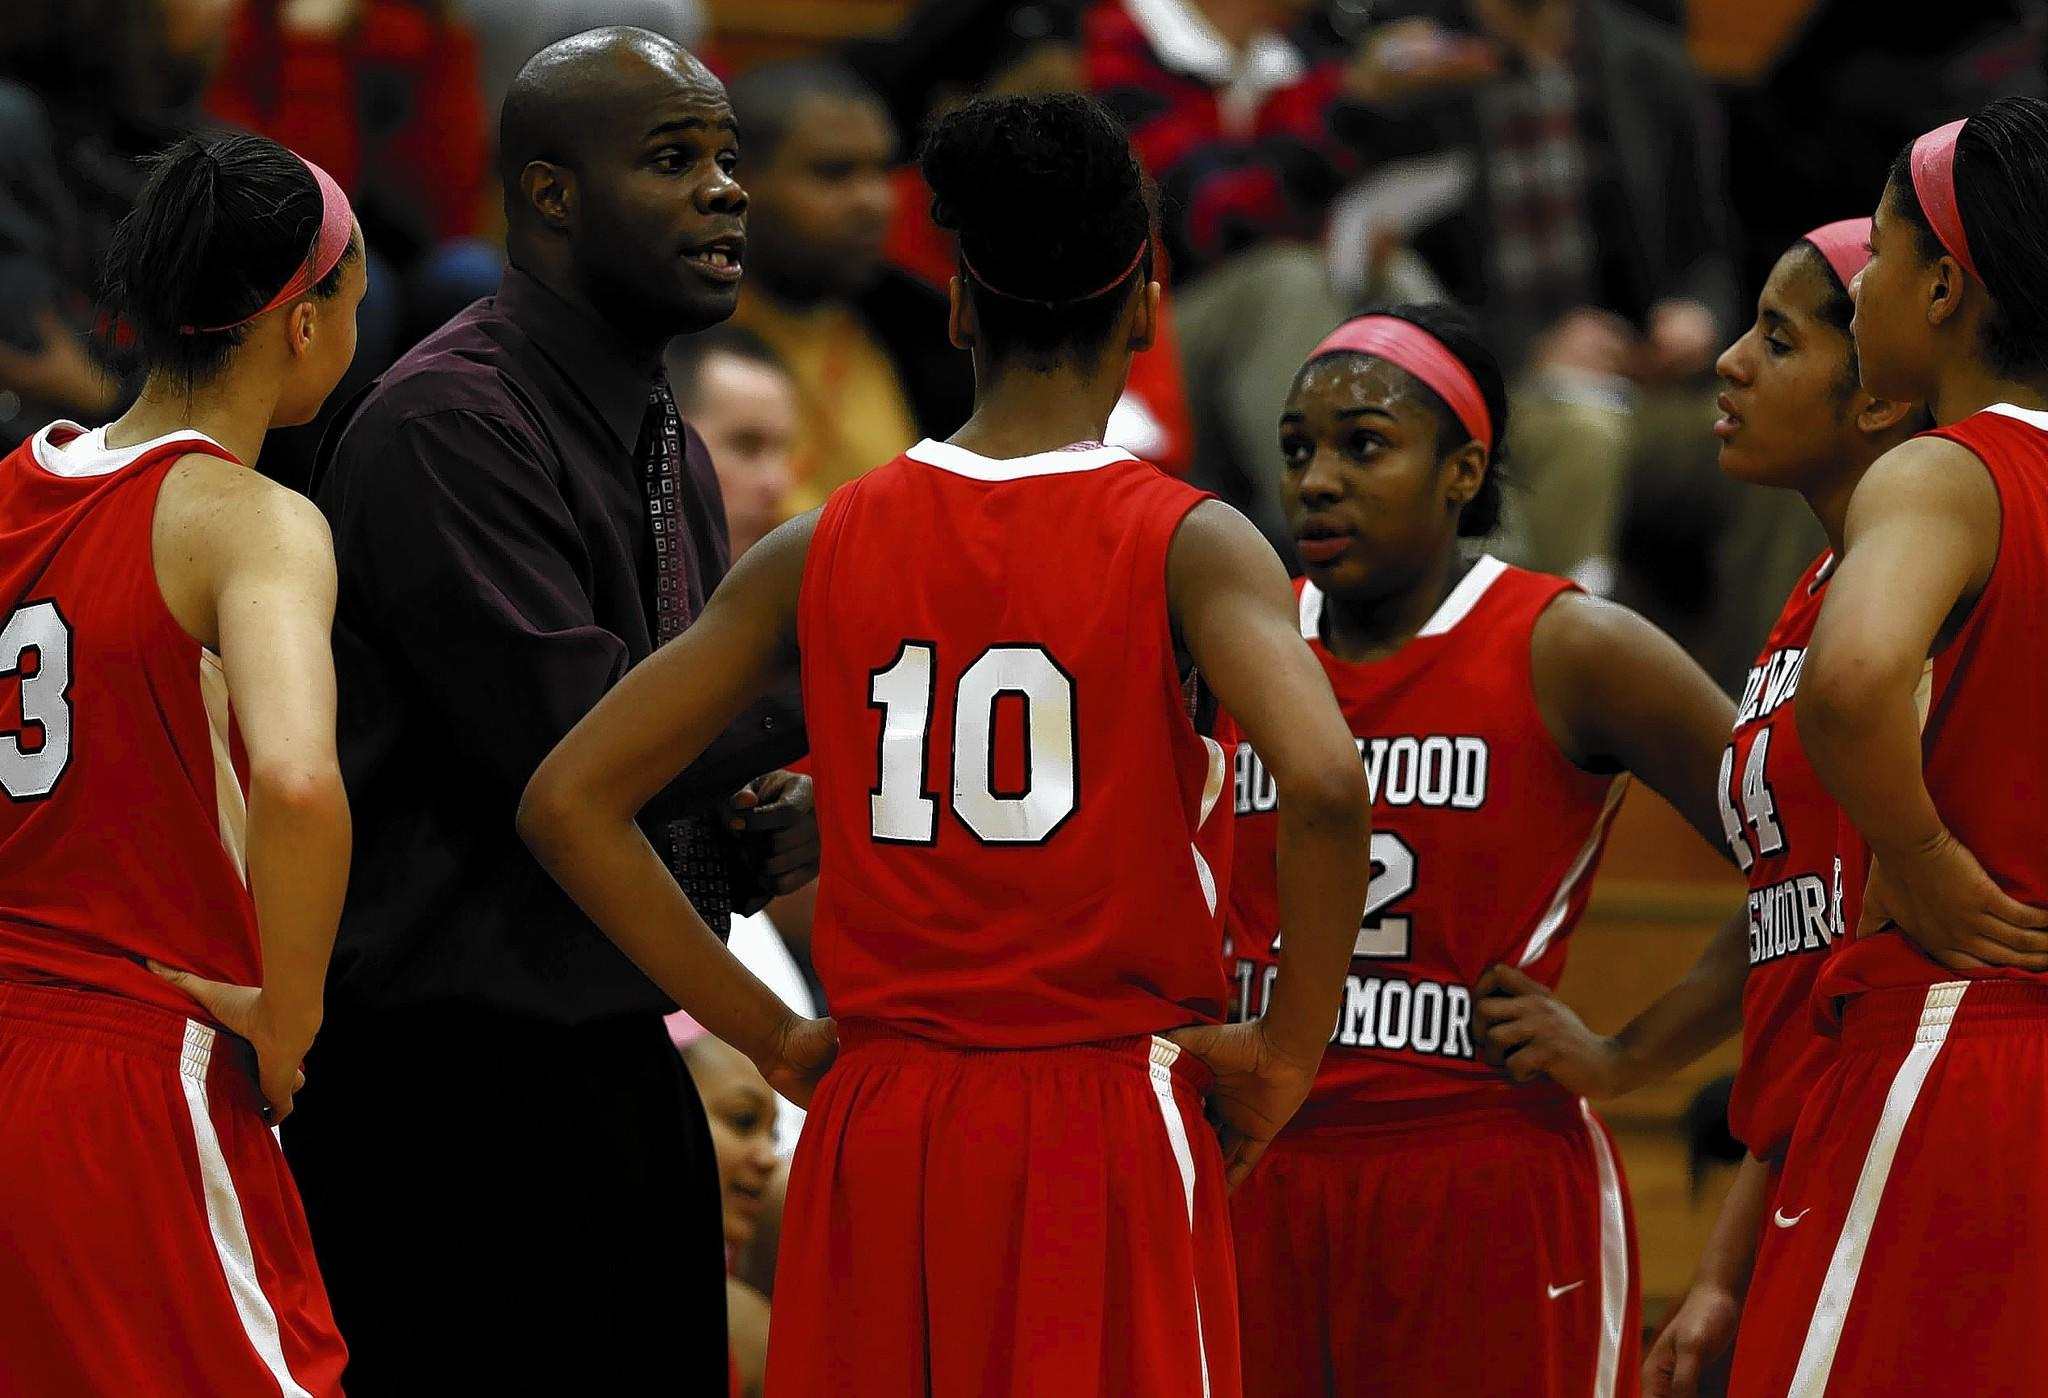 A lawsuit filed against Homewood-Flossmoor High School alleges girls basketball coach Anthony Smith, second from left, recruited six players from other districts — including four from his former school, Bolingbrook, which he left last year.